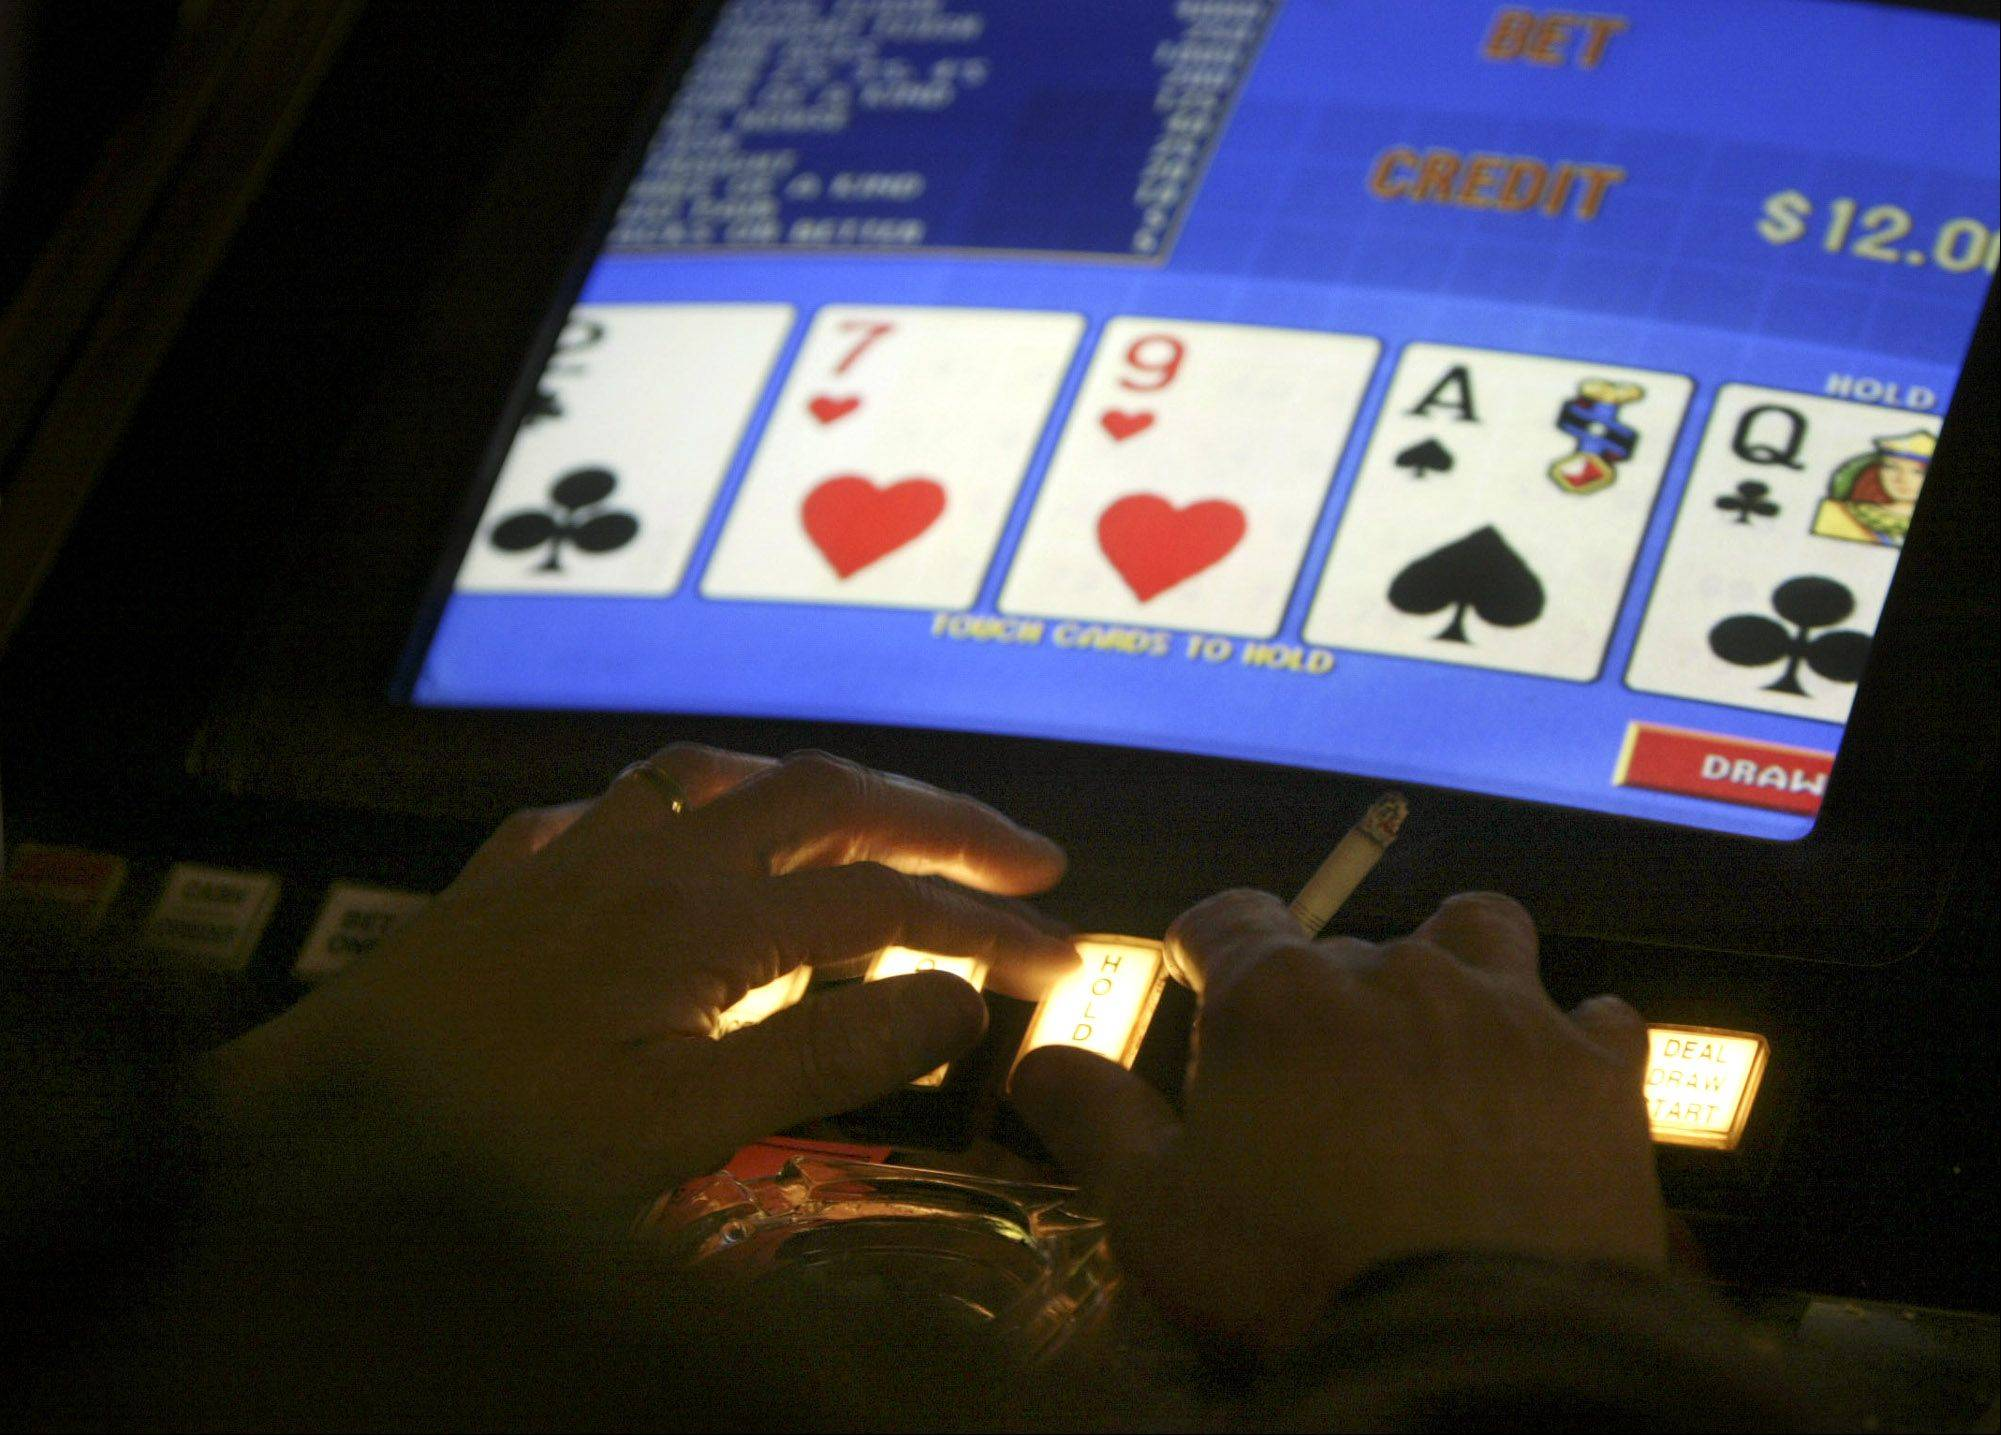 Huntley passed two ordinances to let businesses with liquor licenses run a video gambling enterprise. Officials say Huntley could expect to see $100,000 in annual revenue from the machines, but haven't decided how they'd spend it.